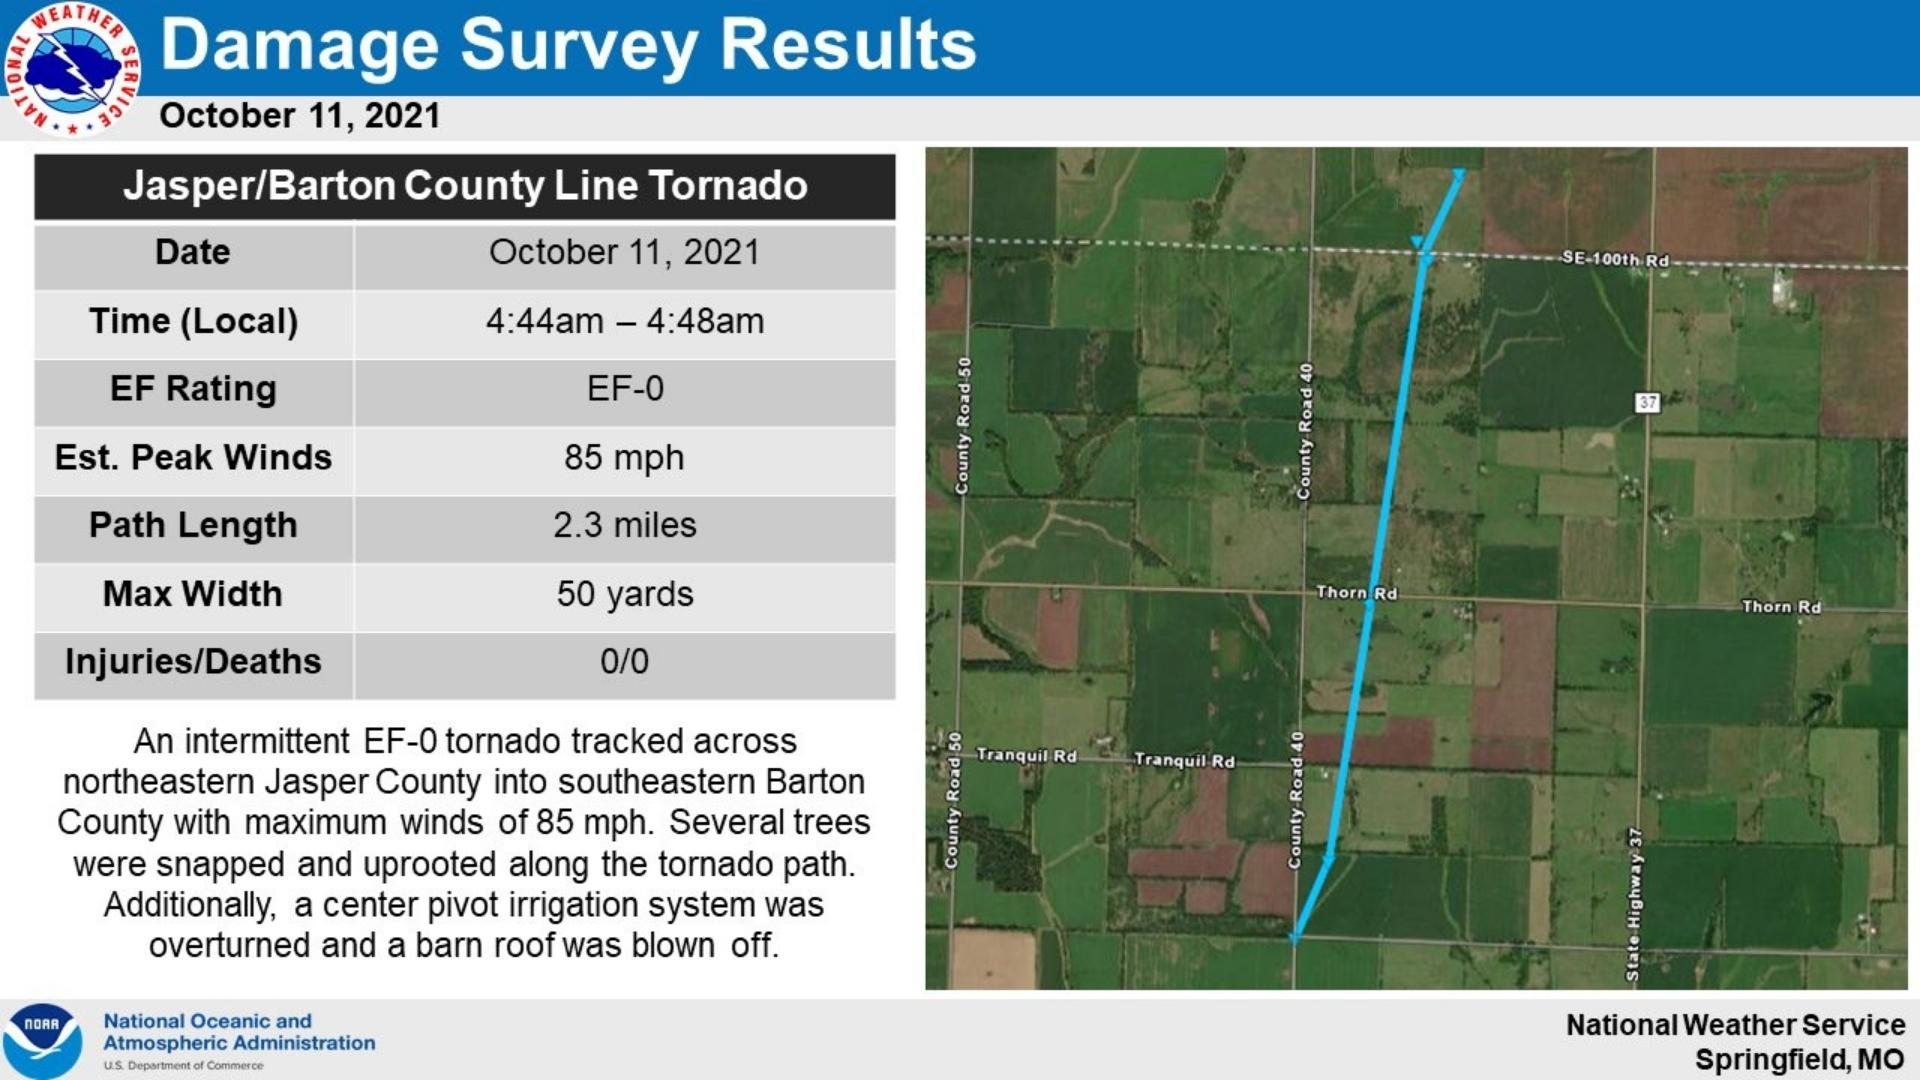 Survey Results For Ef 0 Tornado Along The Jasper County And Barton County Line Oct 11 2021